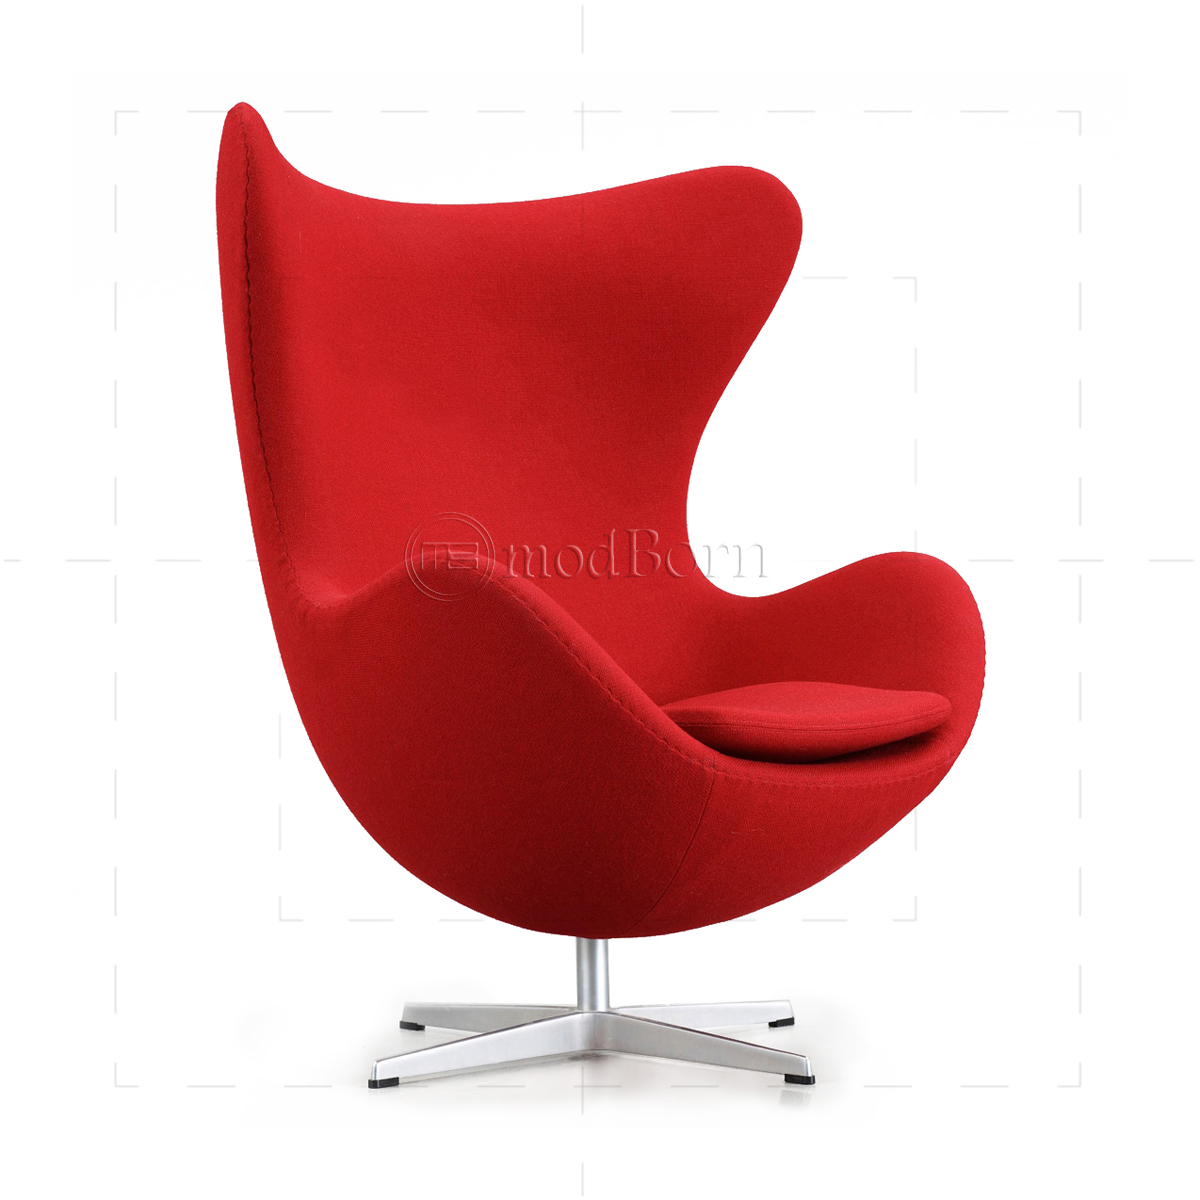 Arne jacobsen style egg cashmere wool chair red replica for Egg chair jacobsen